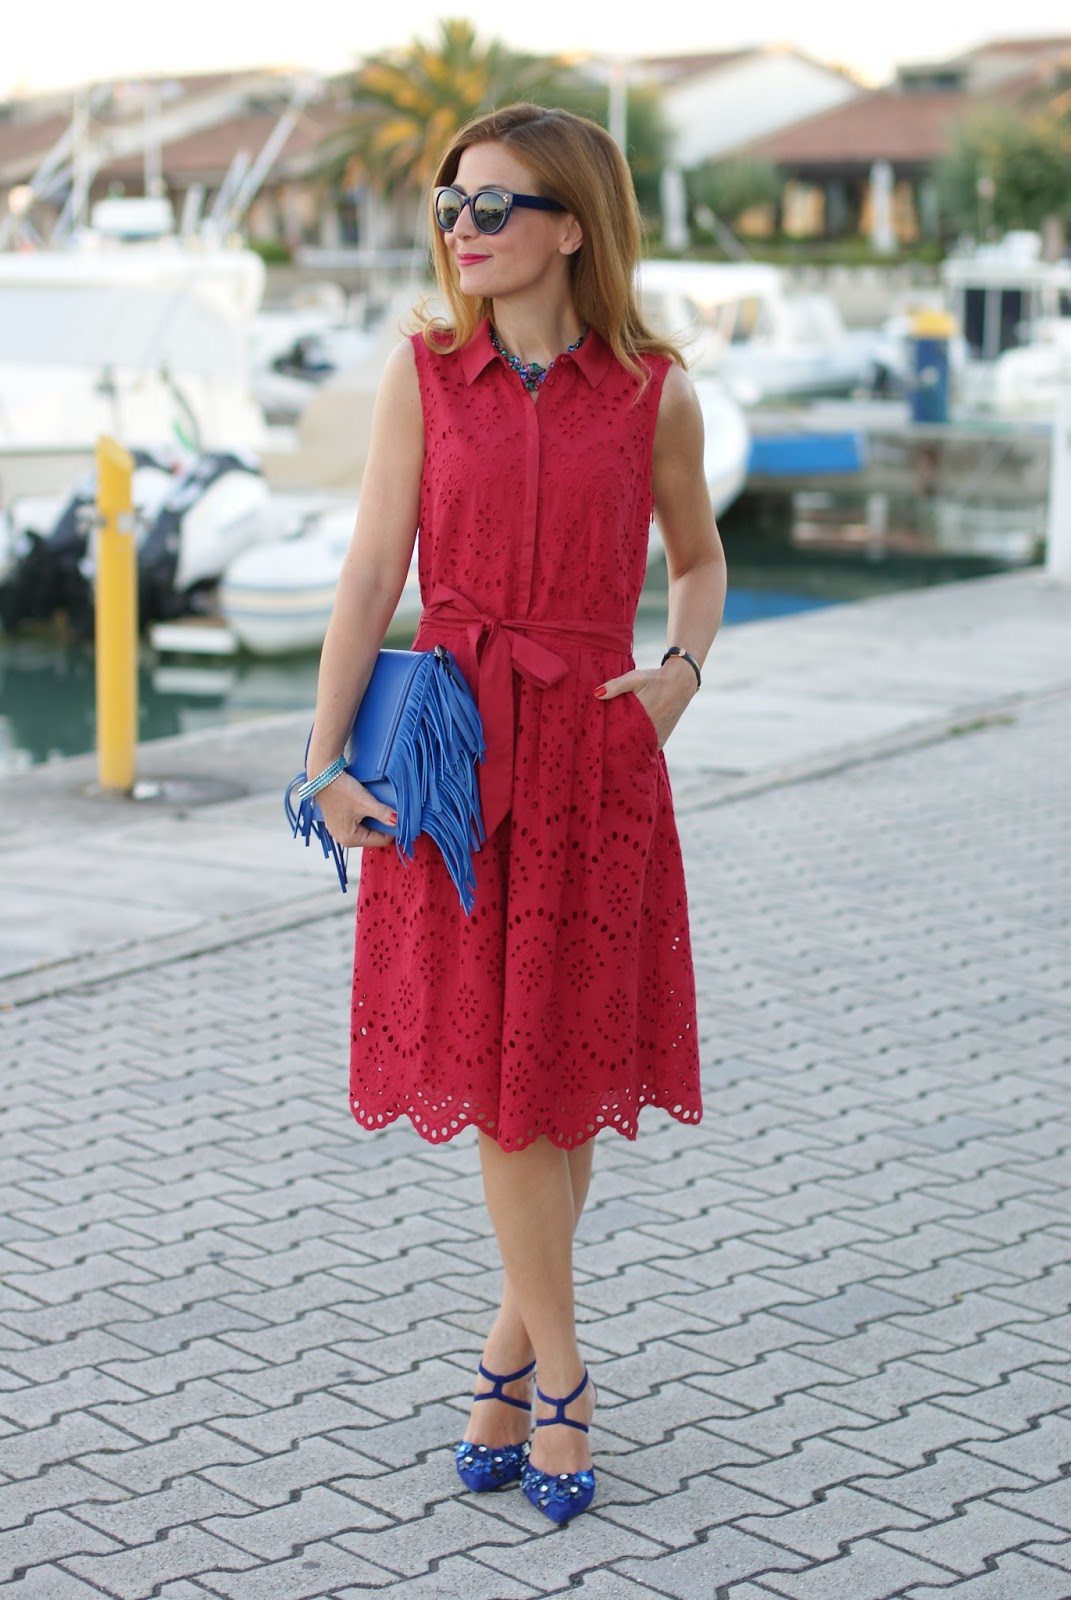 broderie anglaise dress and fringed clutch on Fashion and Cookies fashion blog, fashion blogger style